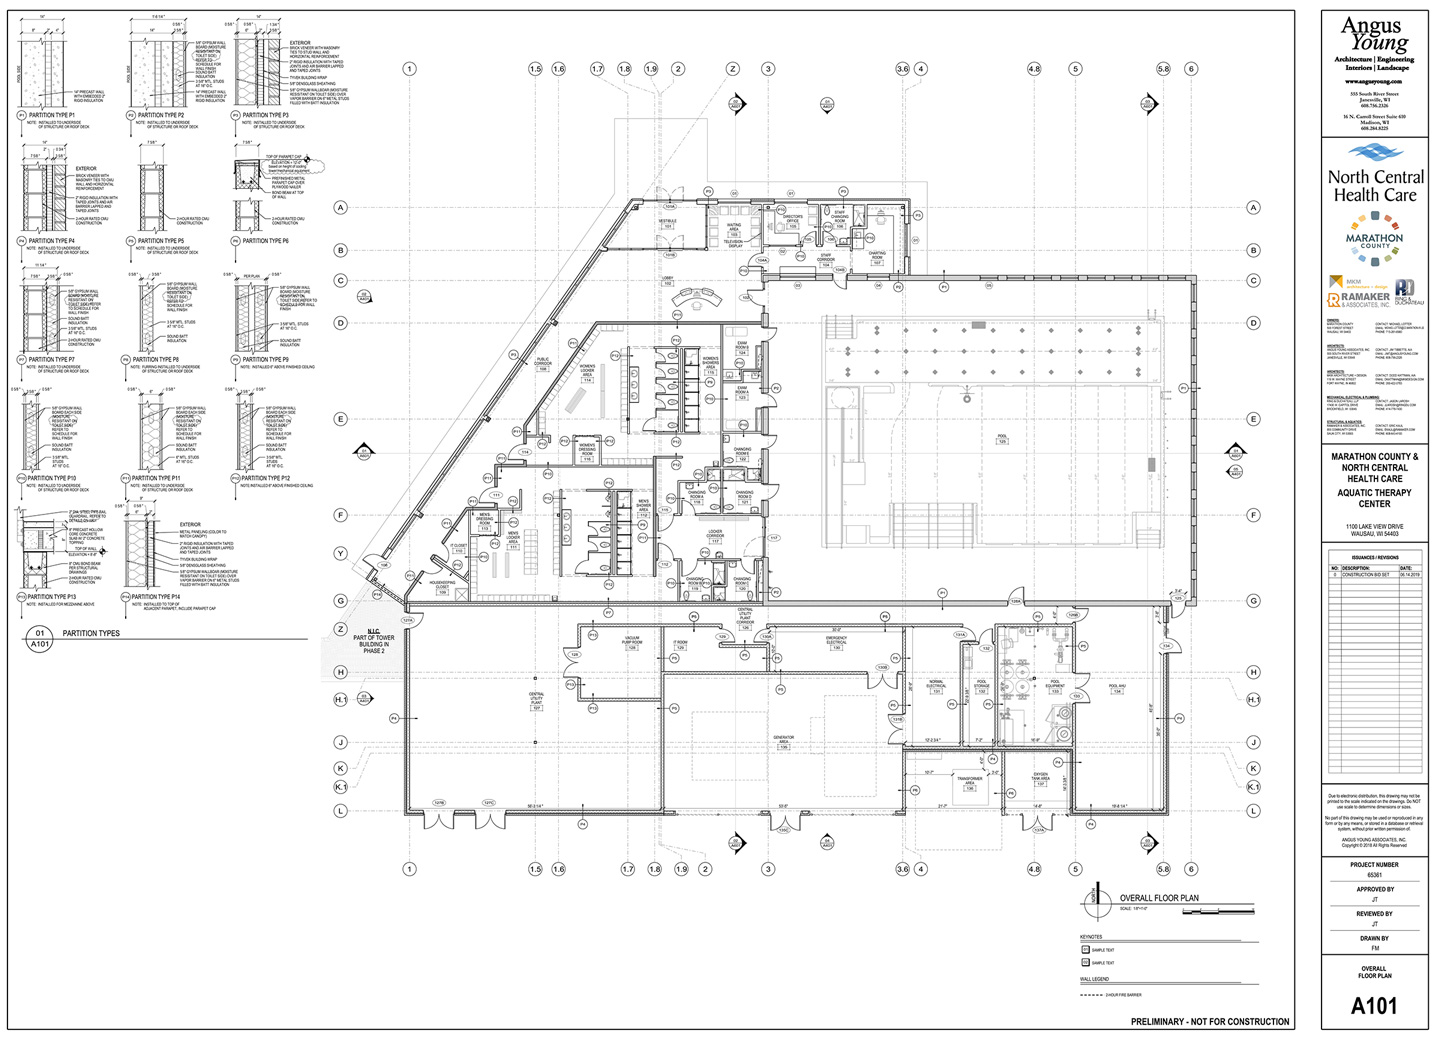 Aquatic Therapy Pool Preliminary Plans